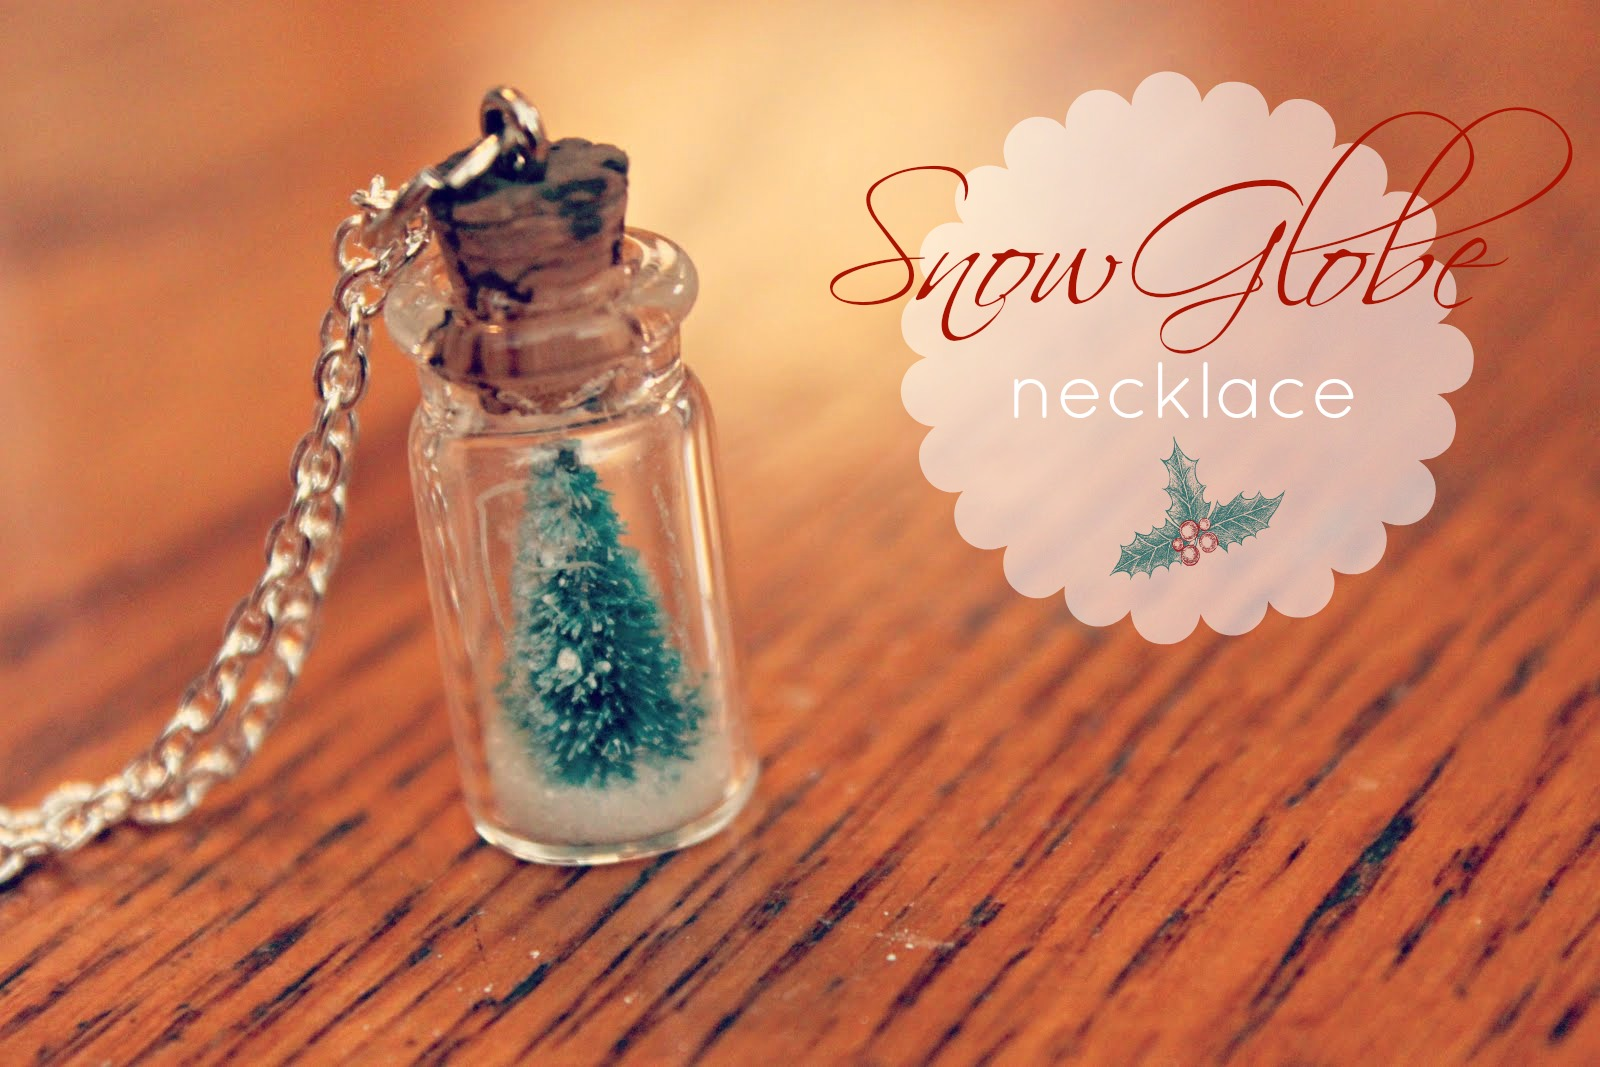 Want to buy a finished snow globe necklace you can find it here in my